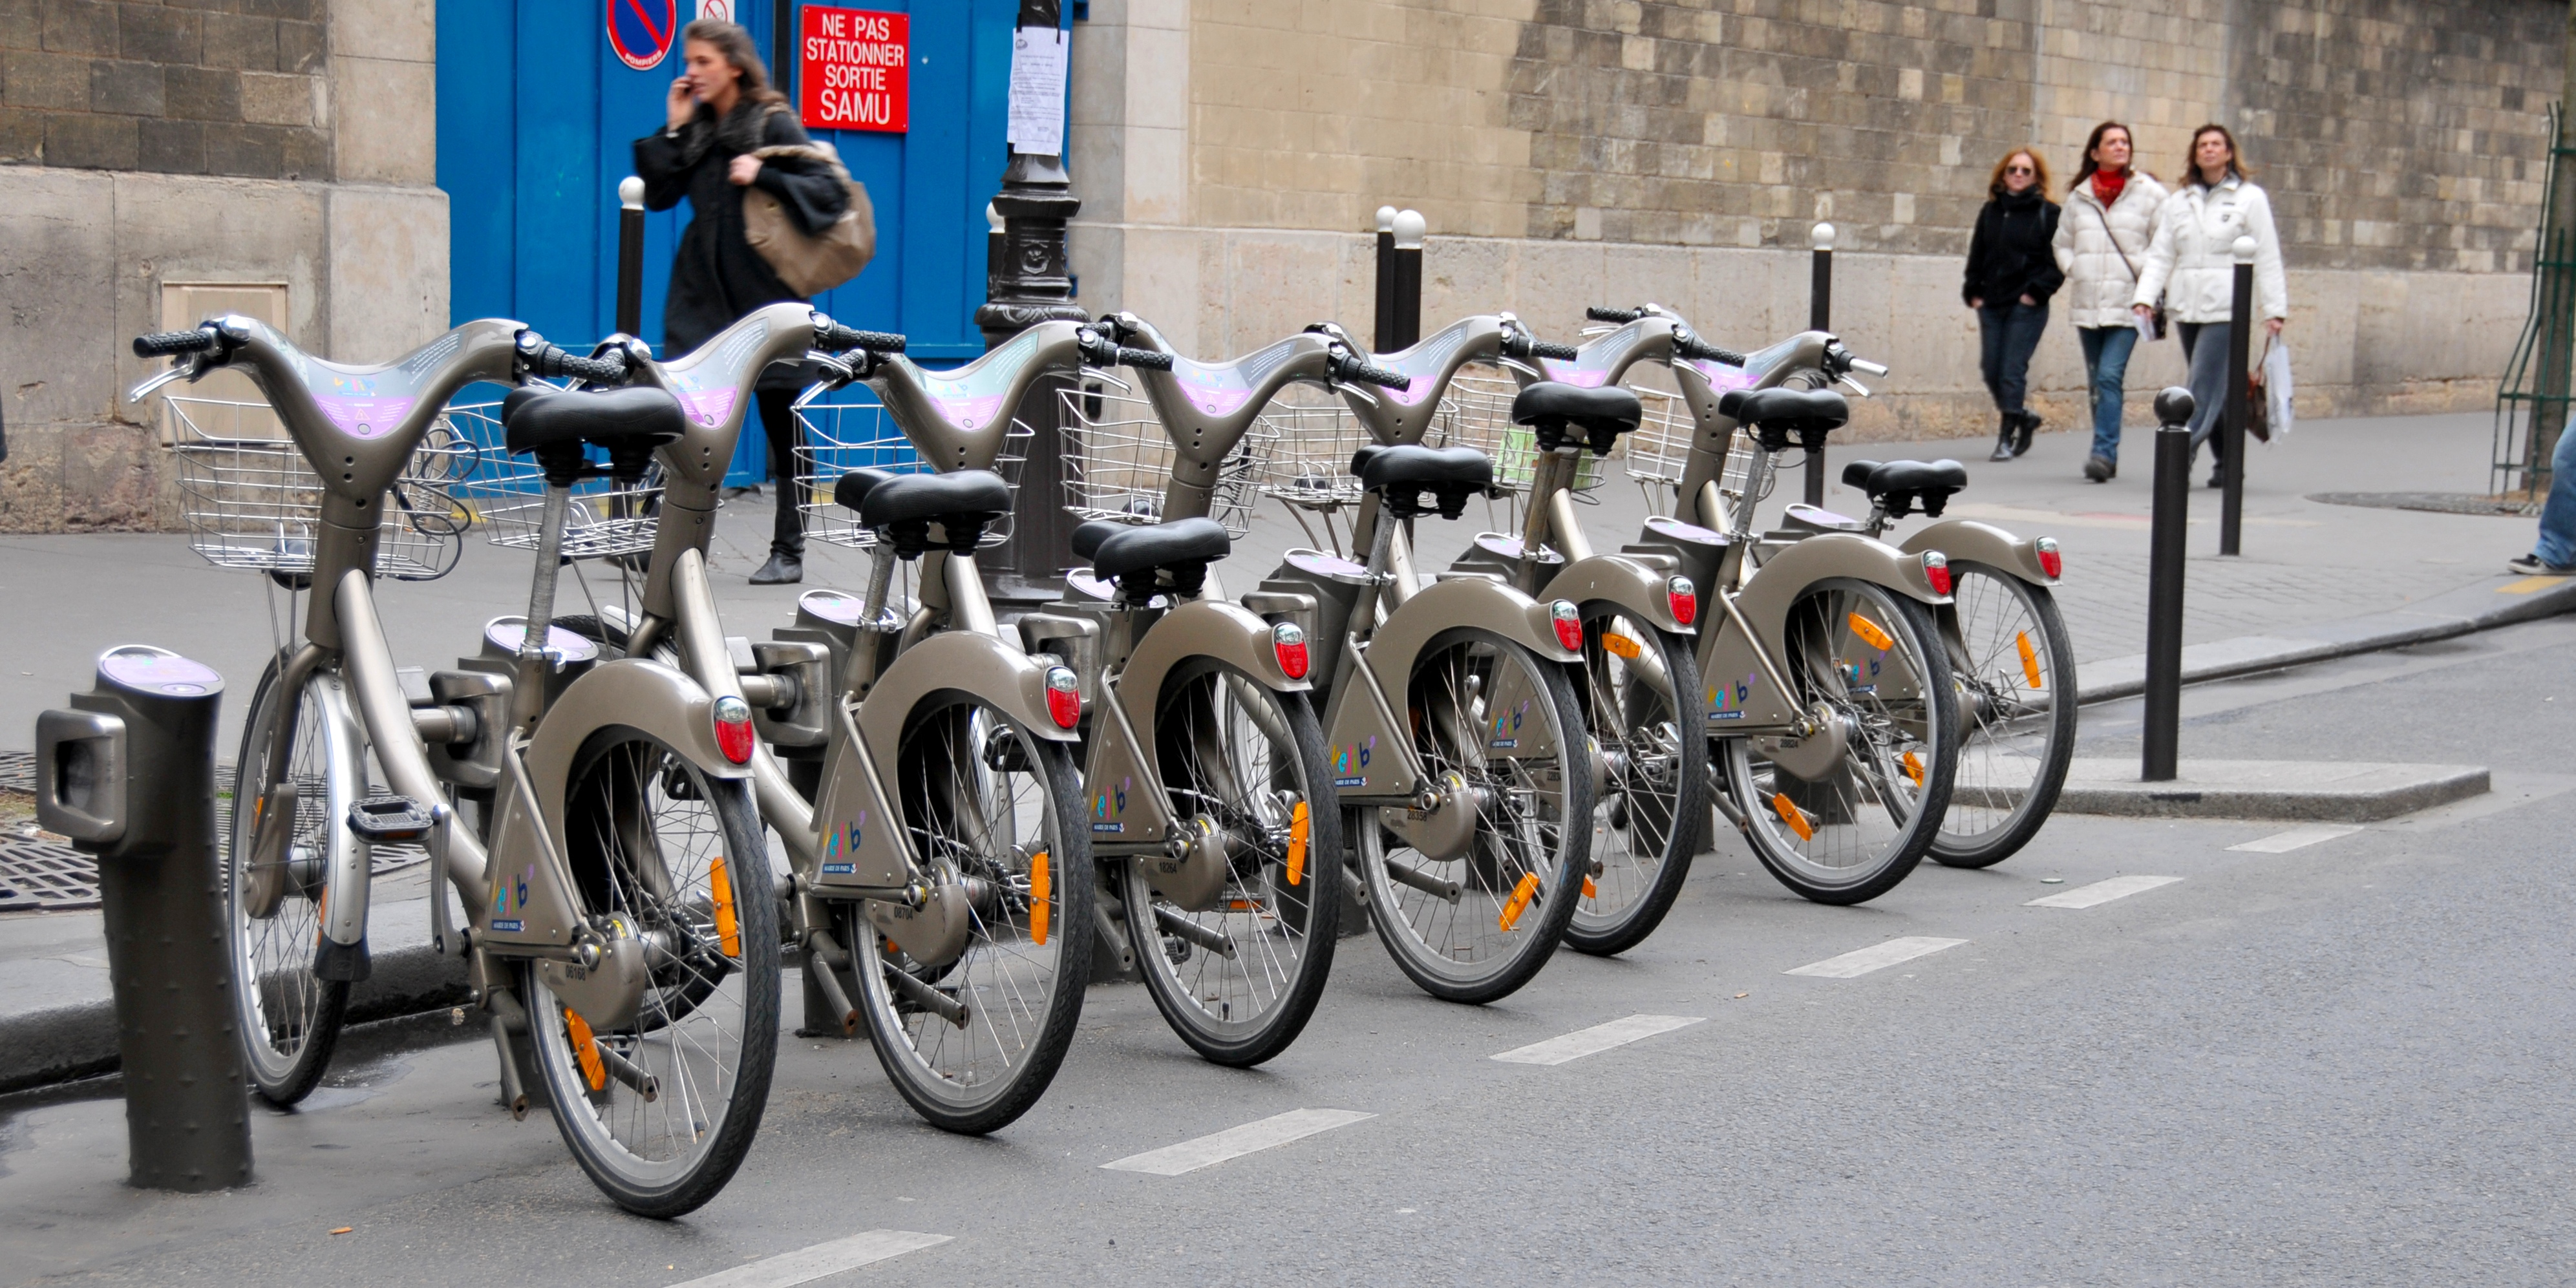 Paris is rolling out the world's largest e-bike fleet with €40/month rentals